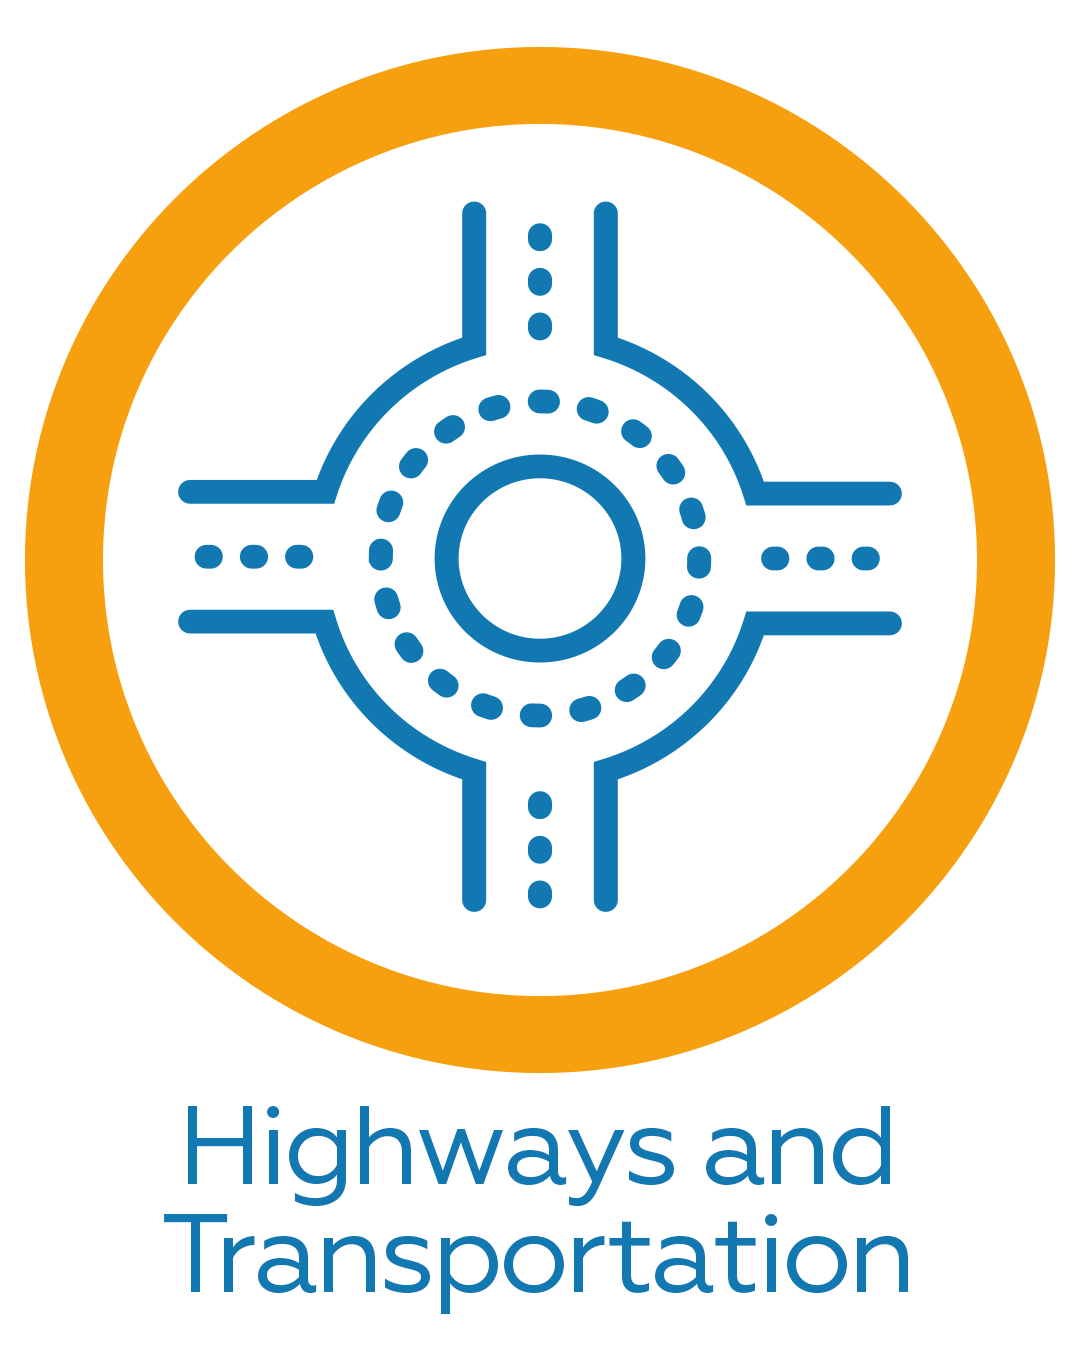 Hire highway and transportation engineers